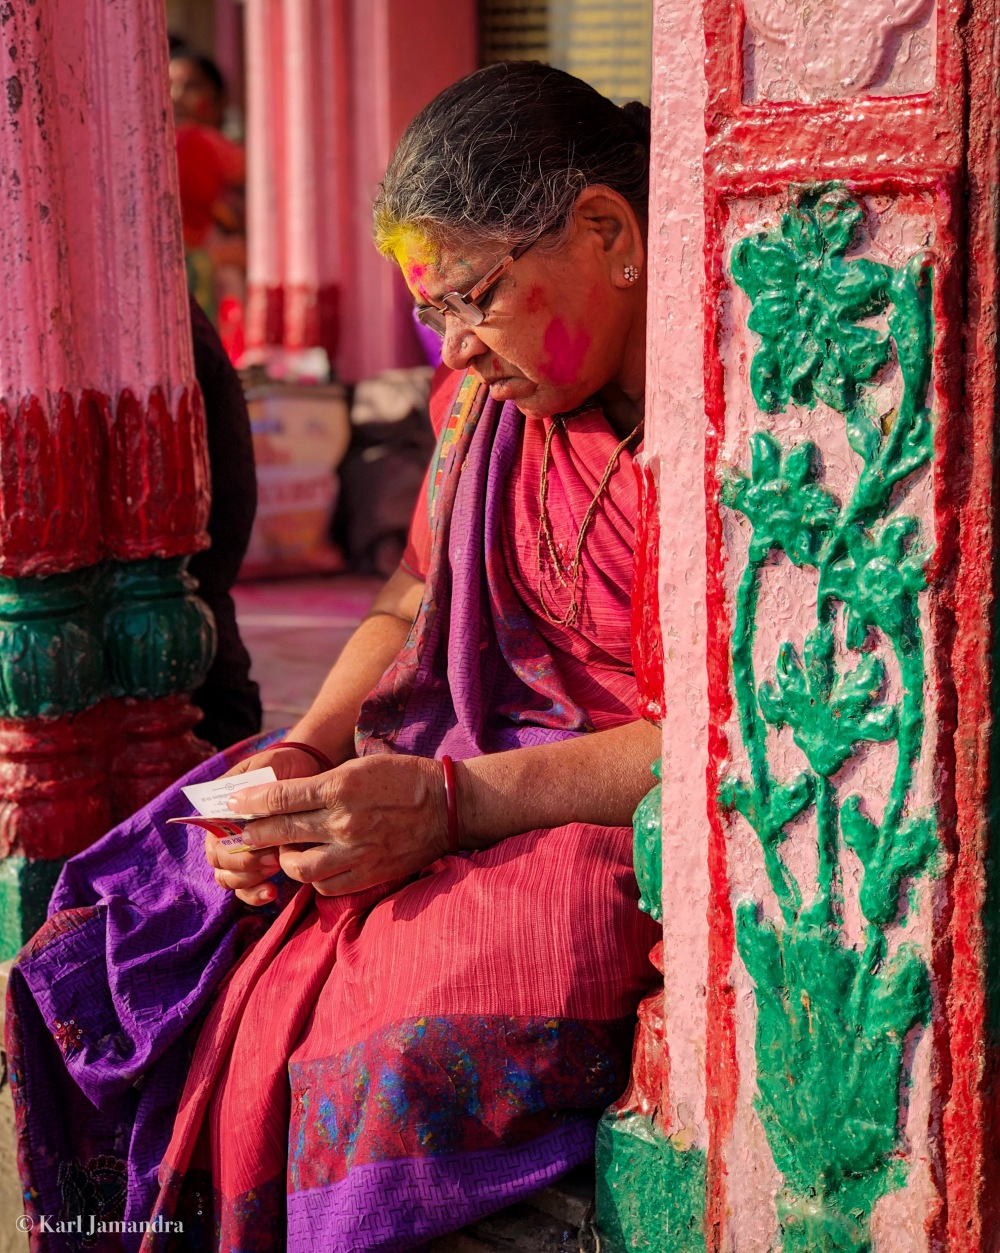 A HINDU WOMAN PRAYING.